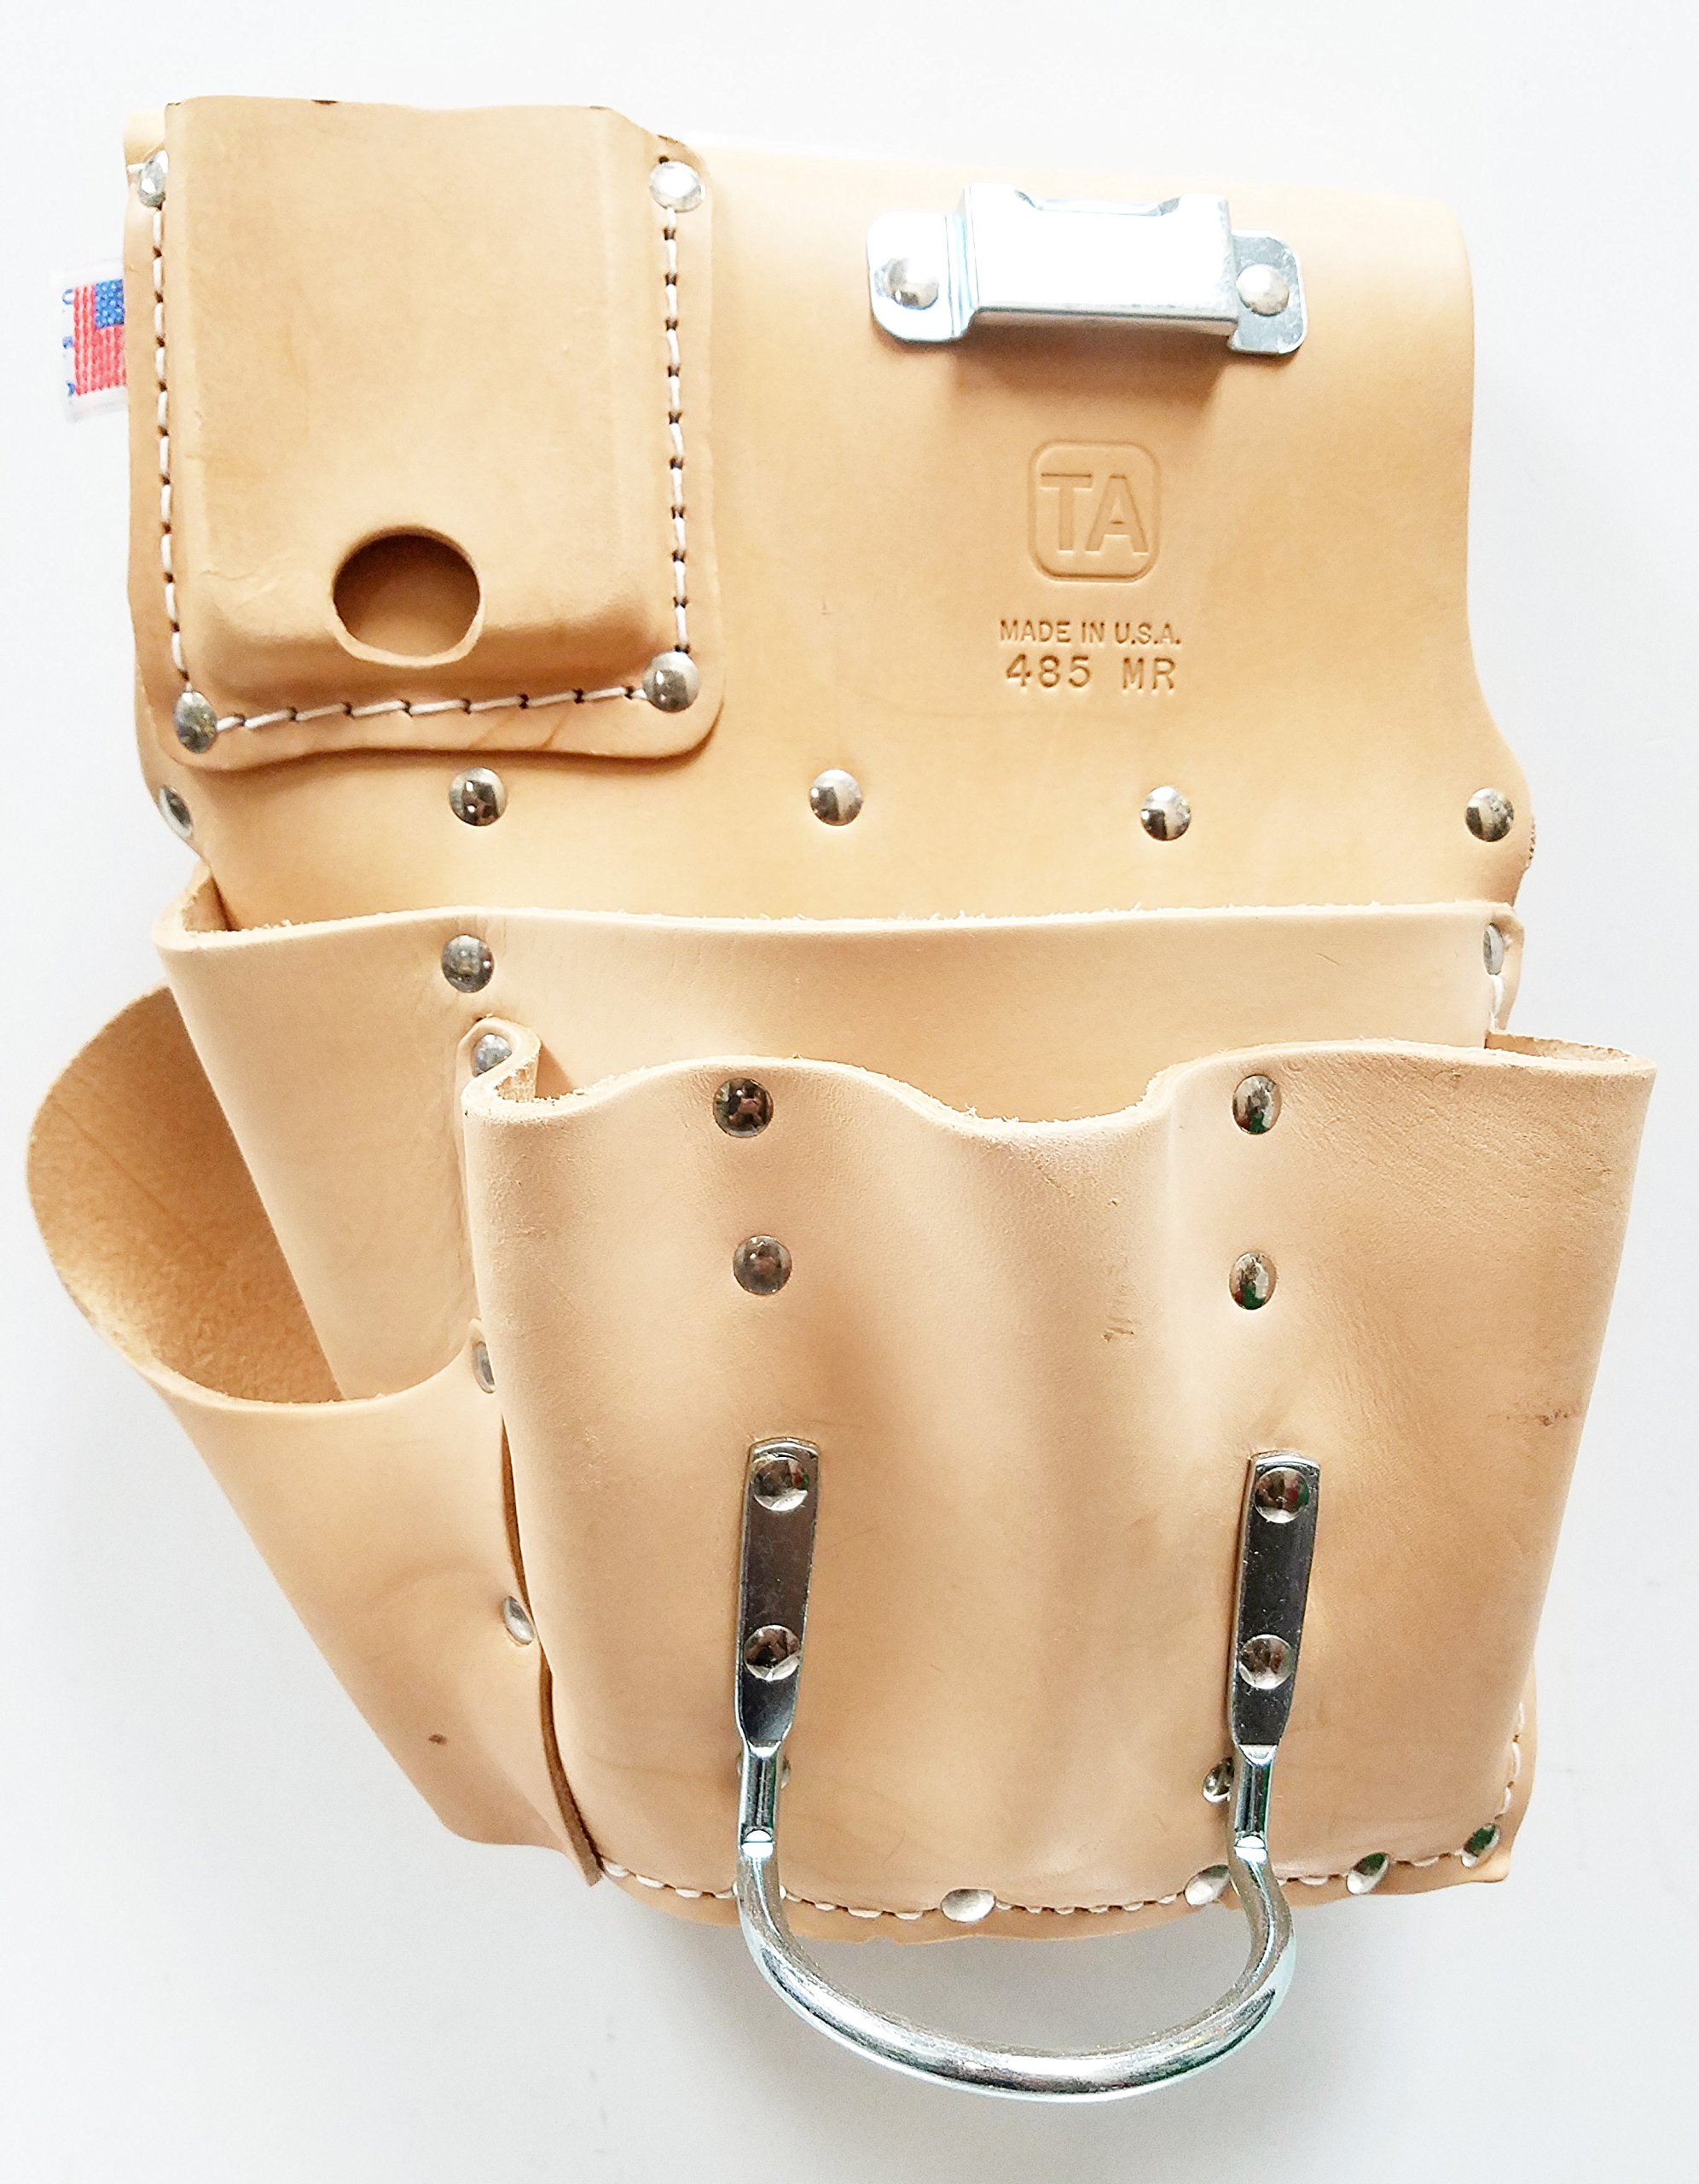 TA485MR, 7 Pocket Leather Drywall Tool Pouch - Right Hand, Made in USA